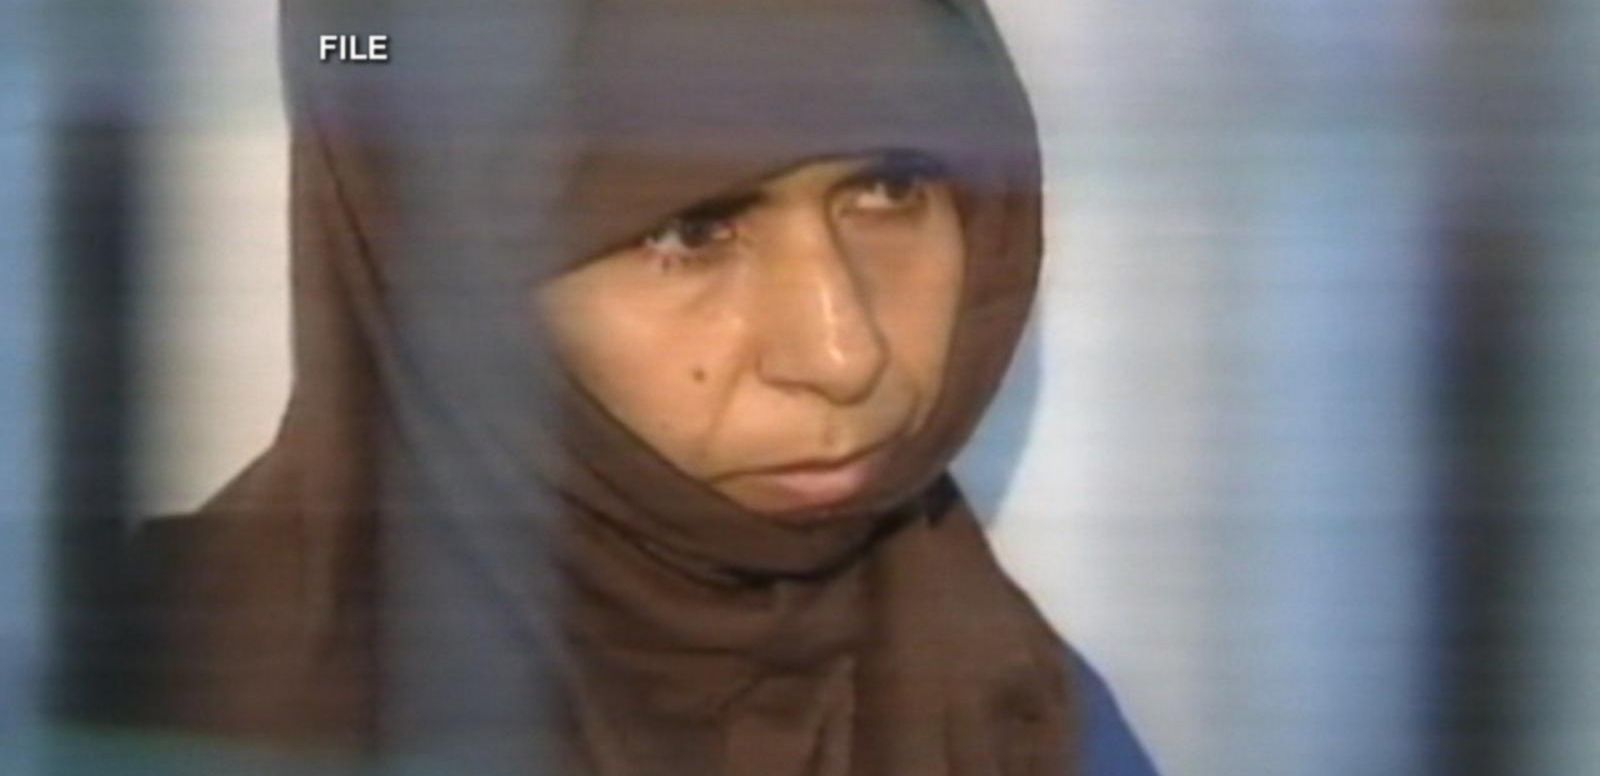 Sajida al-Rishawi was on death row in Jordan since confessing to her role in a 2005 al Qaeda bombing attack.